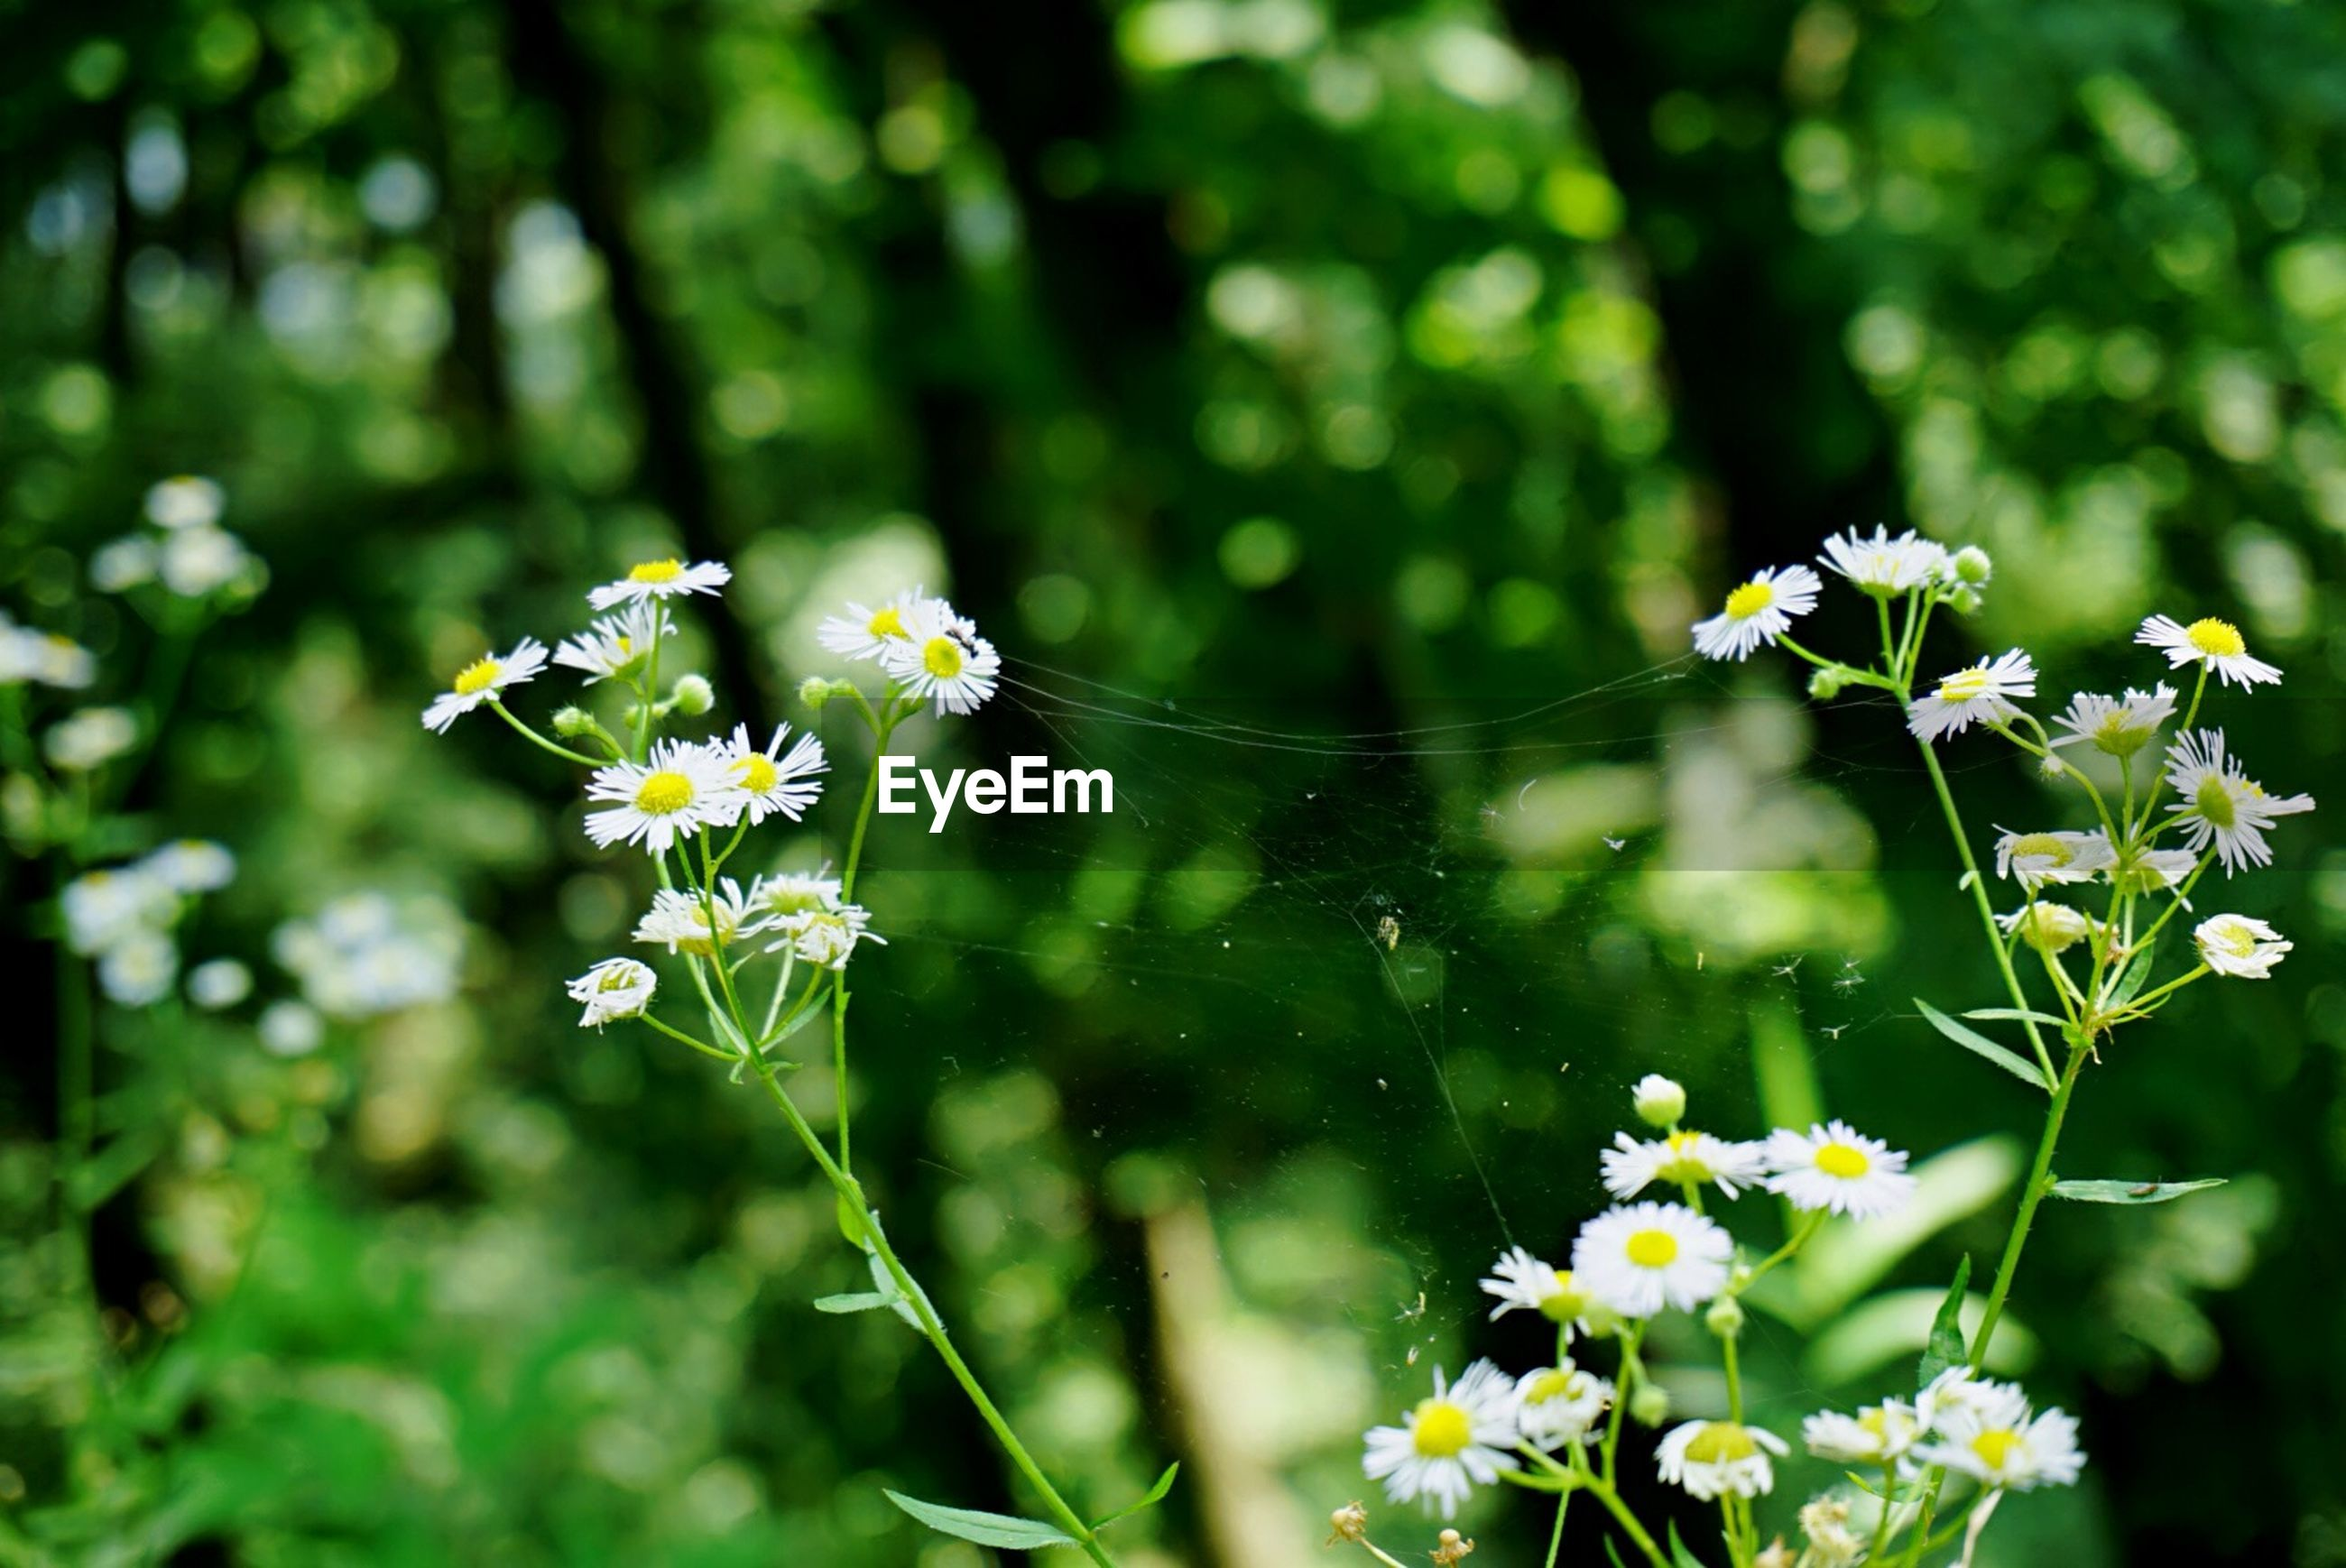 flower, fragility, freshness, growth, plant, animal themes, focus on foreground, white color, nature, wildlife, insect, one animal, beauty in nature, animals in the wild, stem, close-up, selective focus, petal, water, blooming